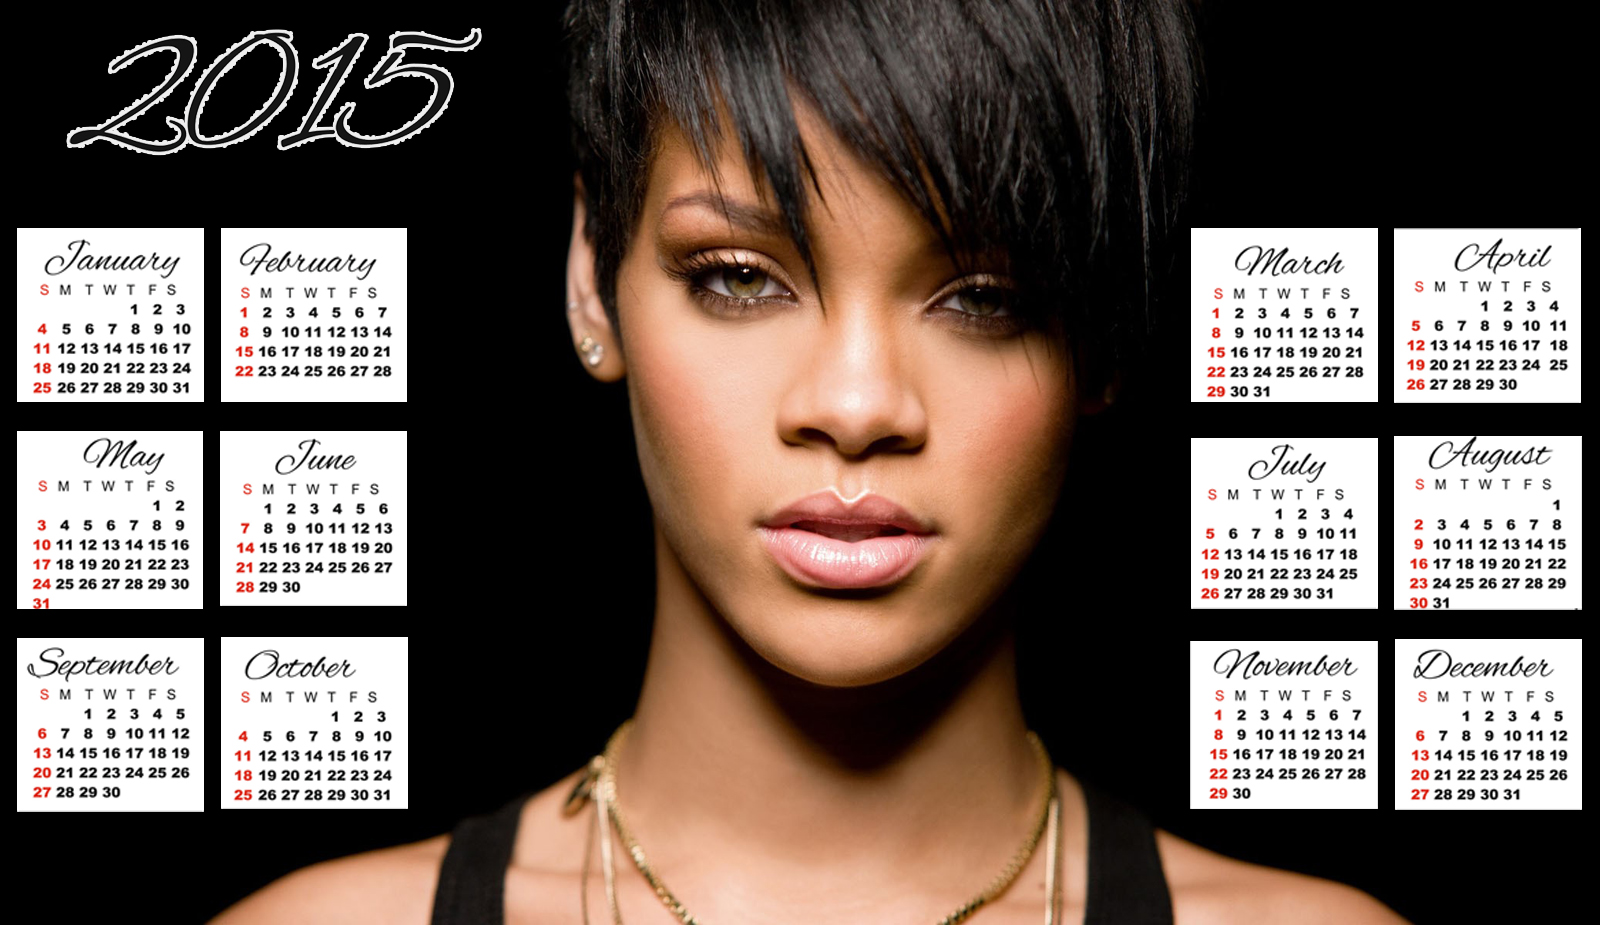 rihanna black short hair calendar 2015